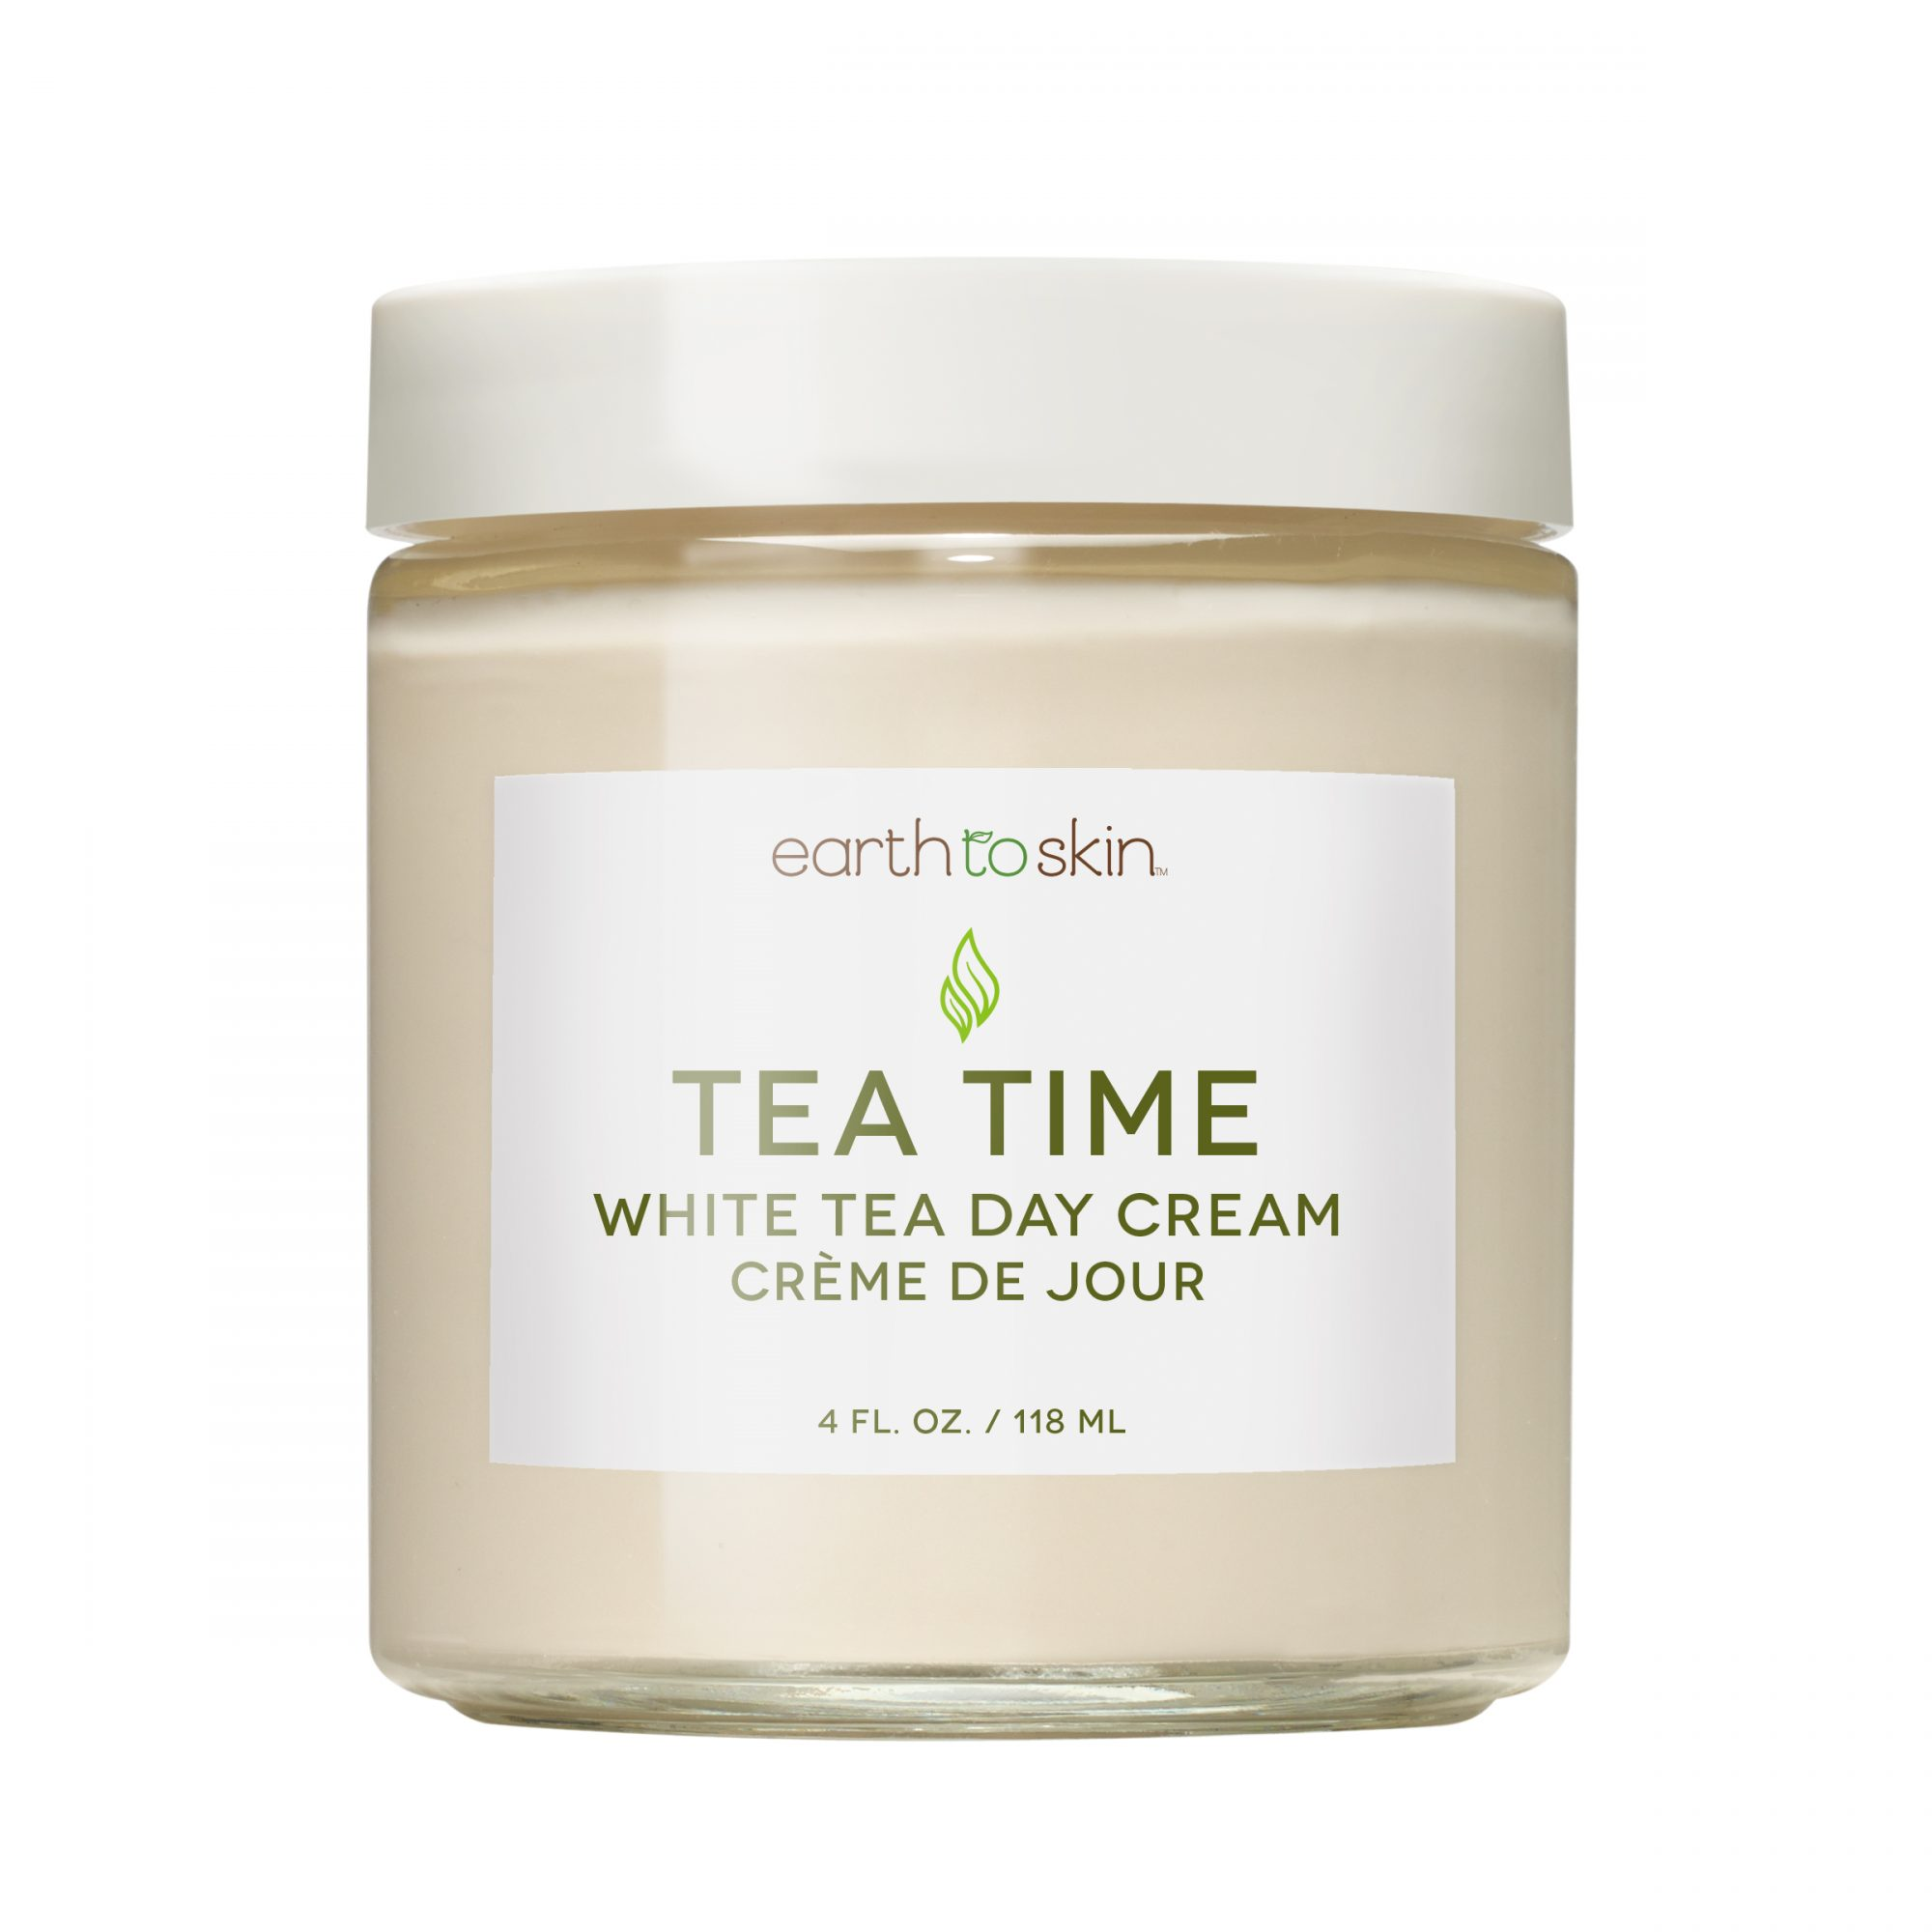 Earth to Skin Tea Time White Tea Day Cream at Walmart